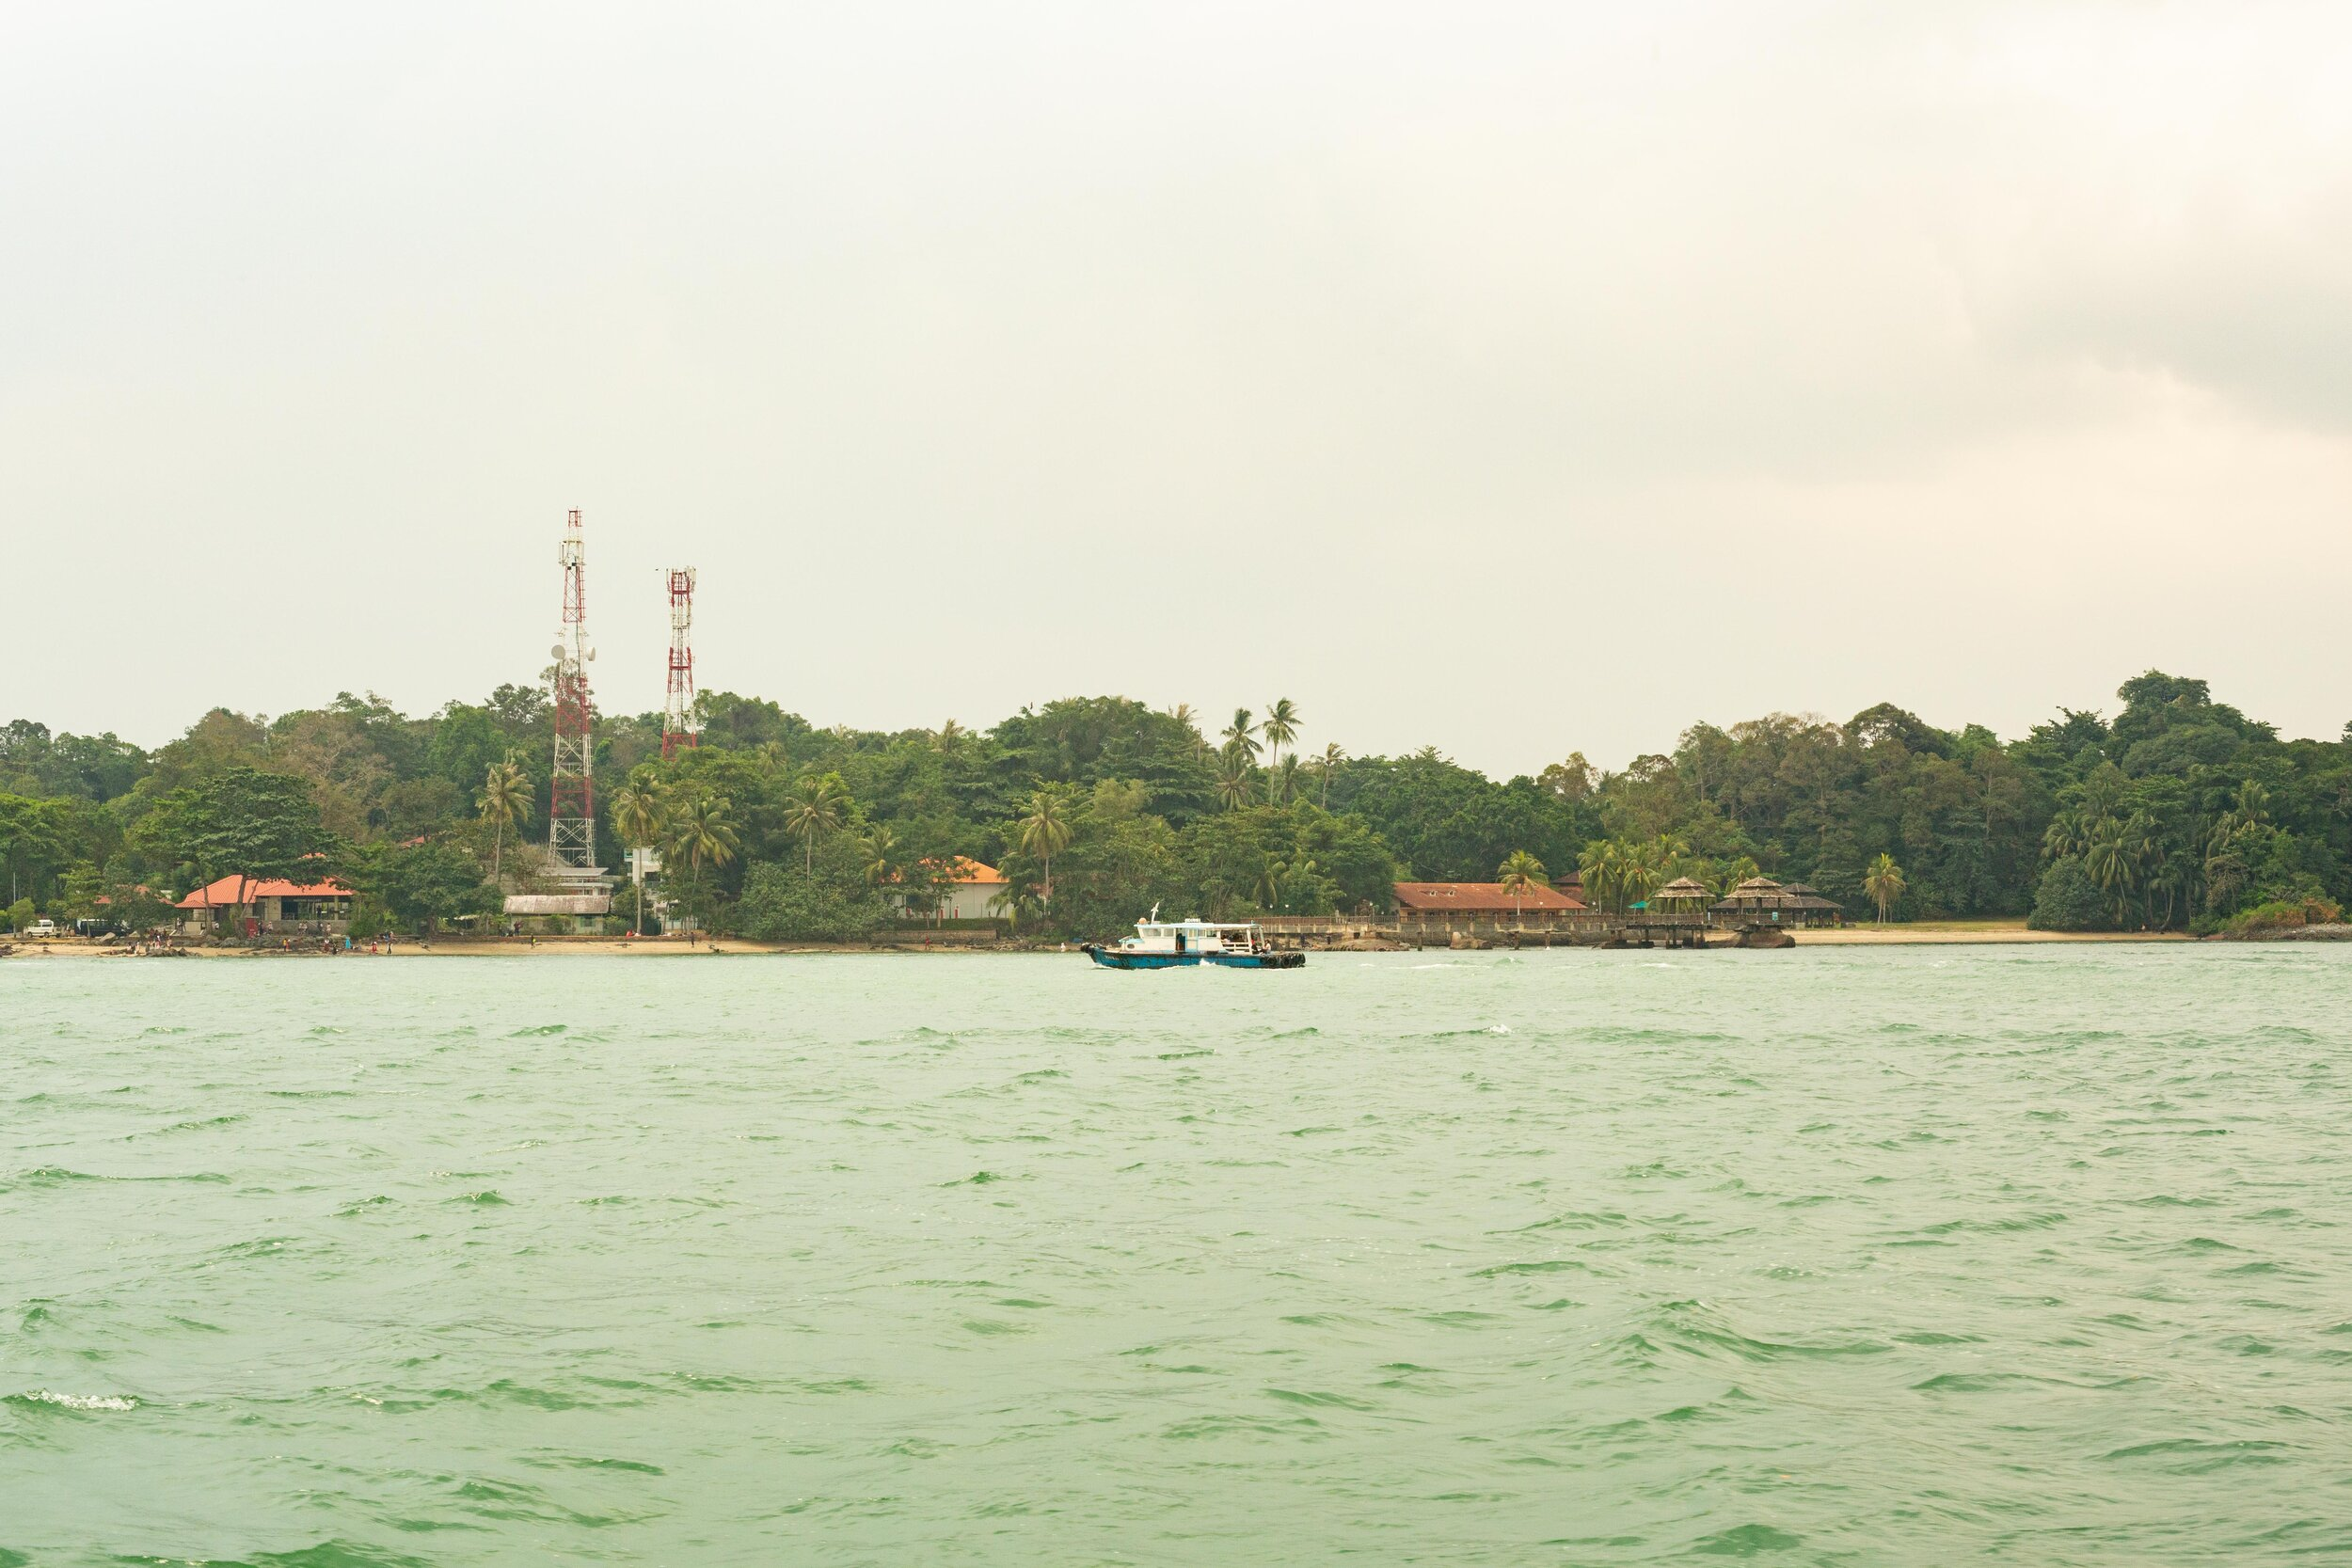 A Bumboat, with Pulau Ubin in the background